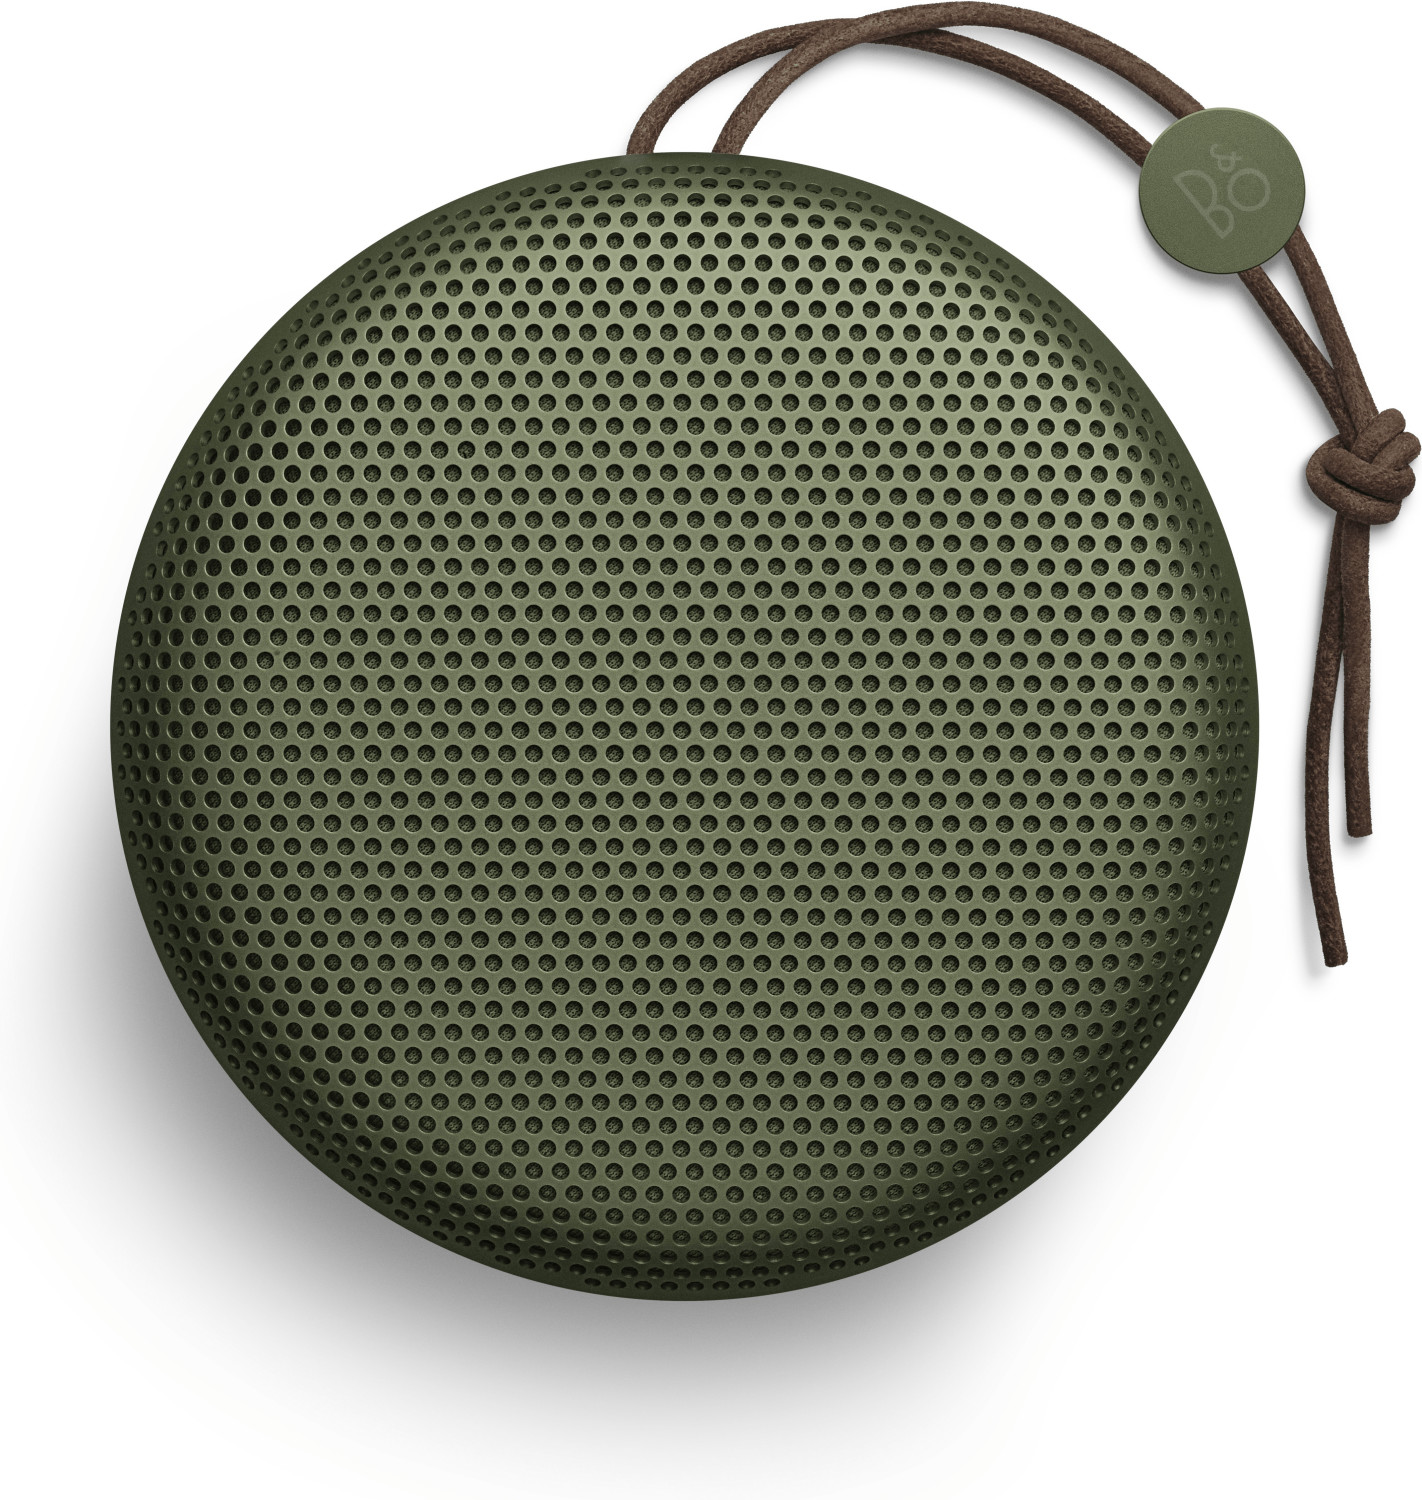 Image of Bang & Olufsen Beoplay A1 Moss Green